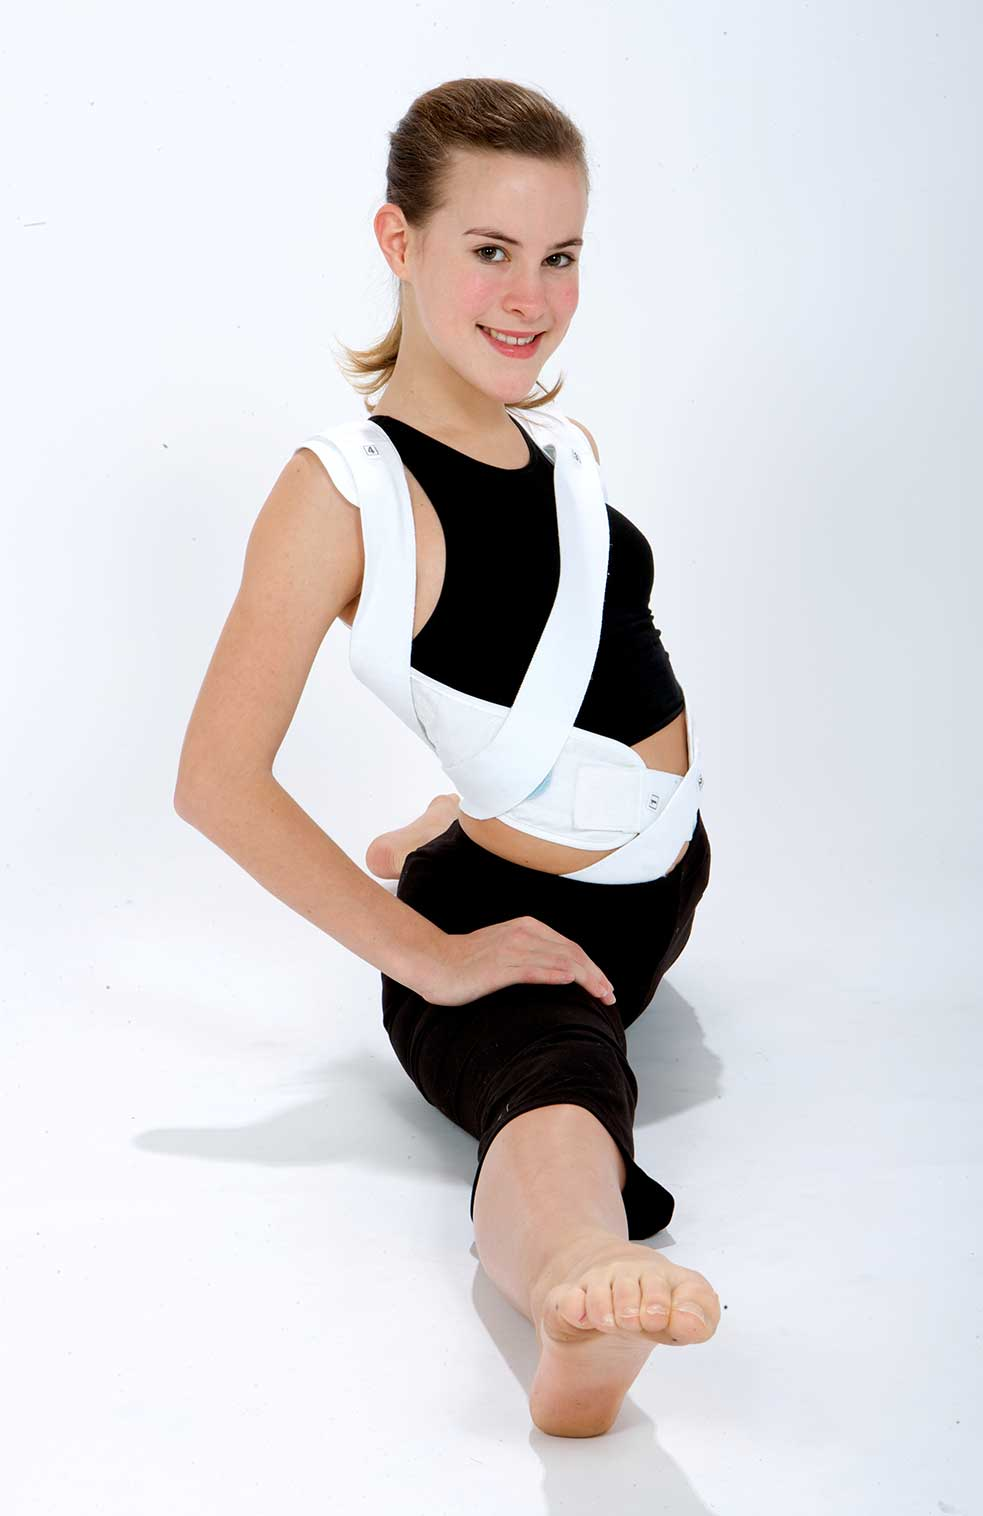 Woman in brace to treat scoliosis